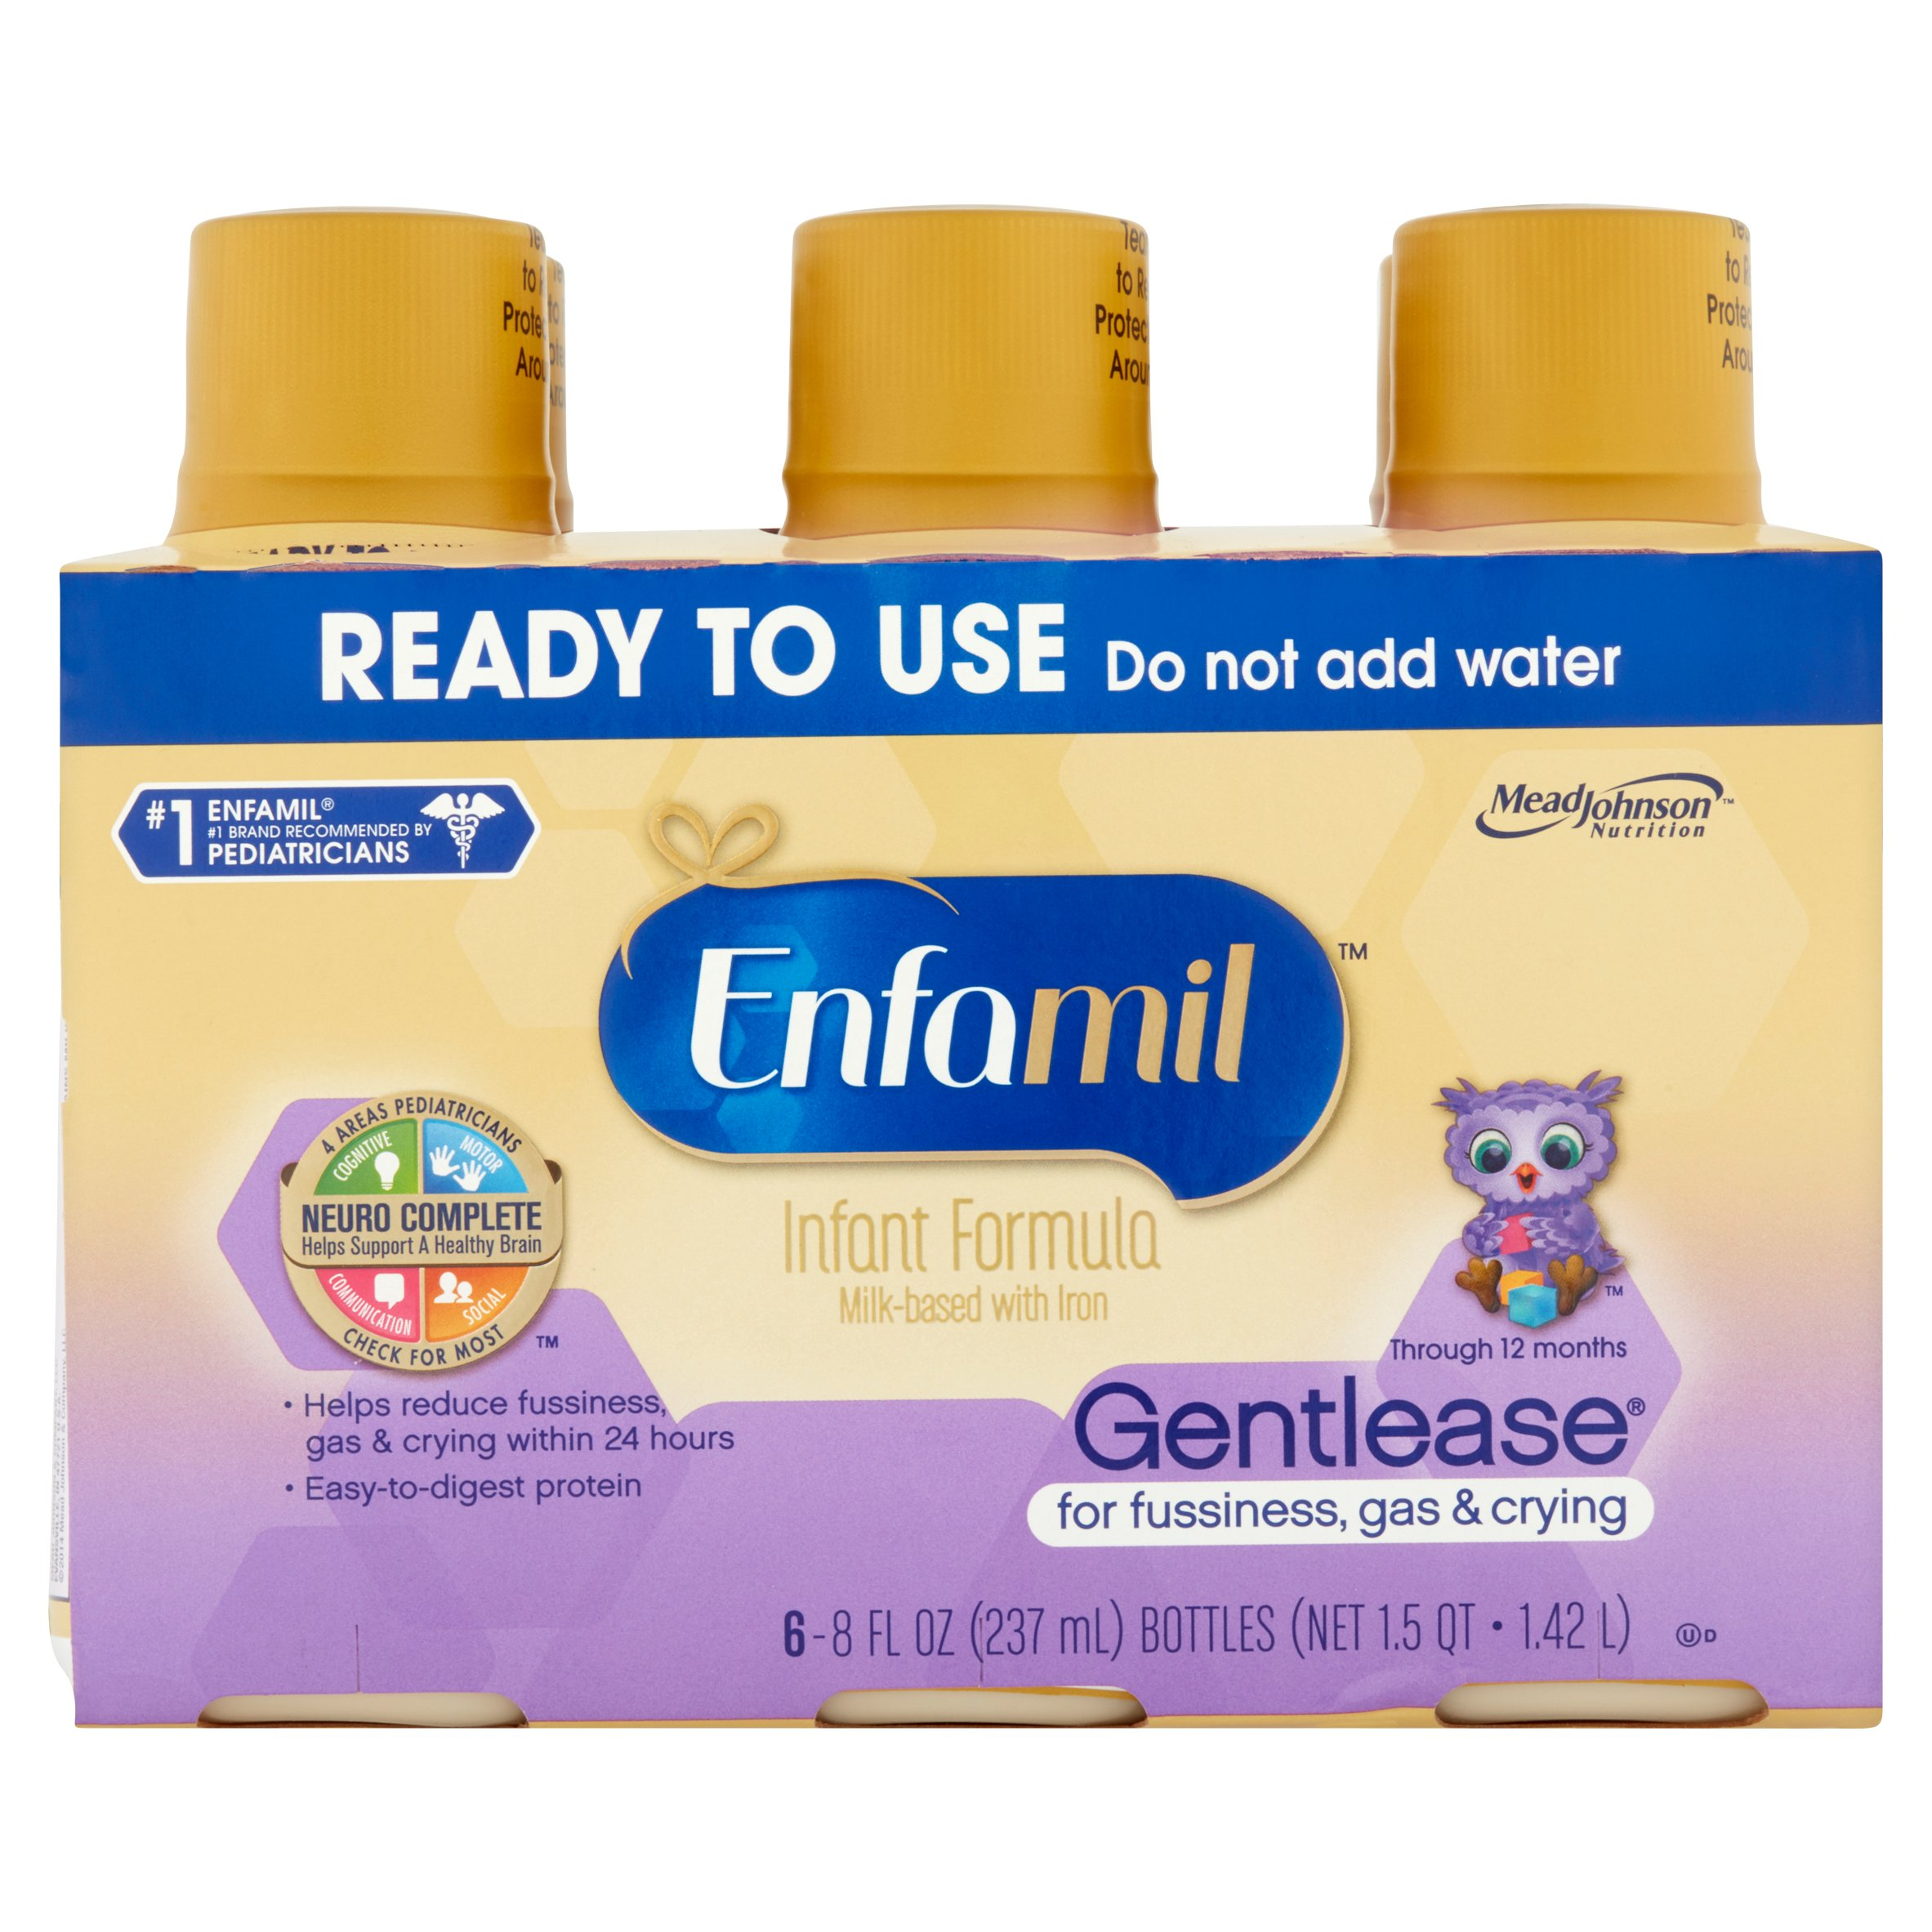 Enfamil Gentlease Baby Formula (24 Pack) Ready-to-Use 8 fl oz Bottles, Clinically Proven to reduce fussiness, gas, crying in 24 hours